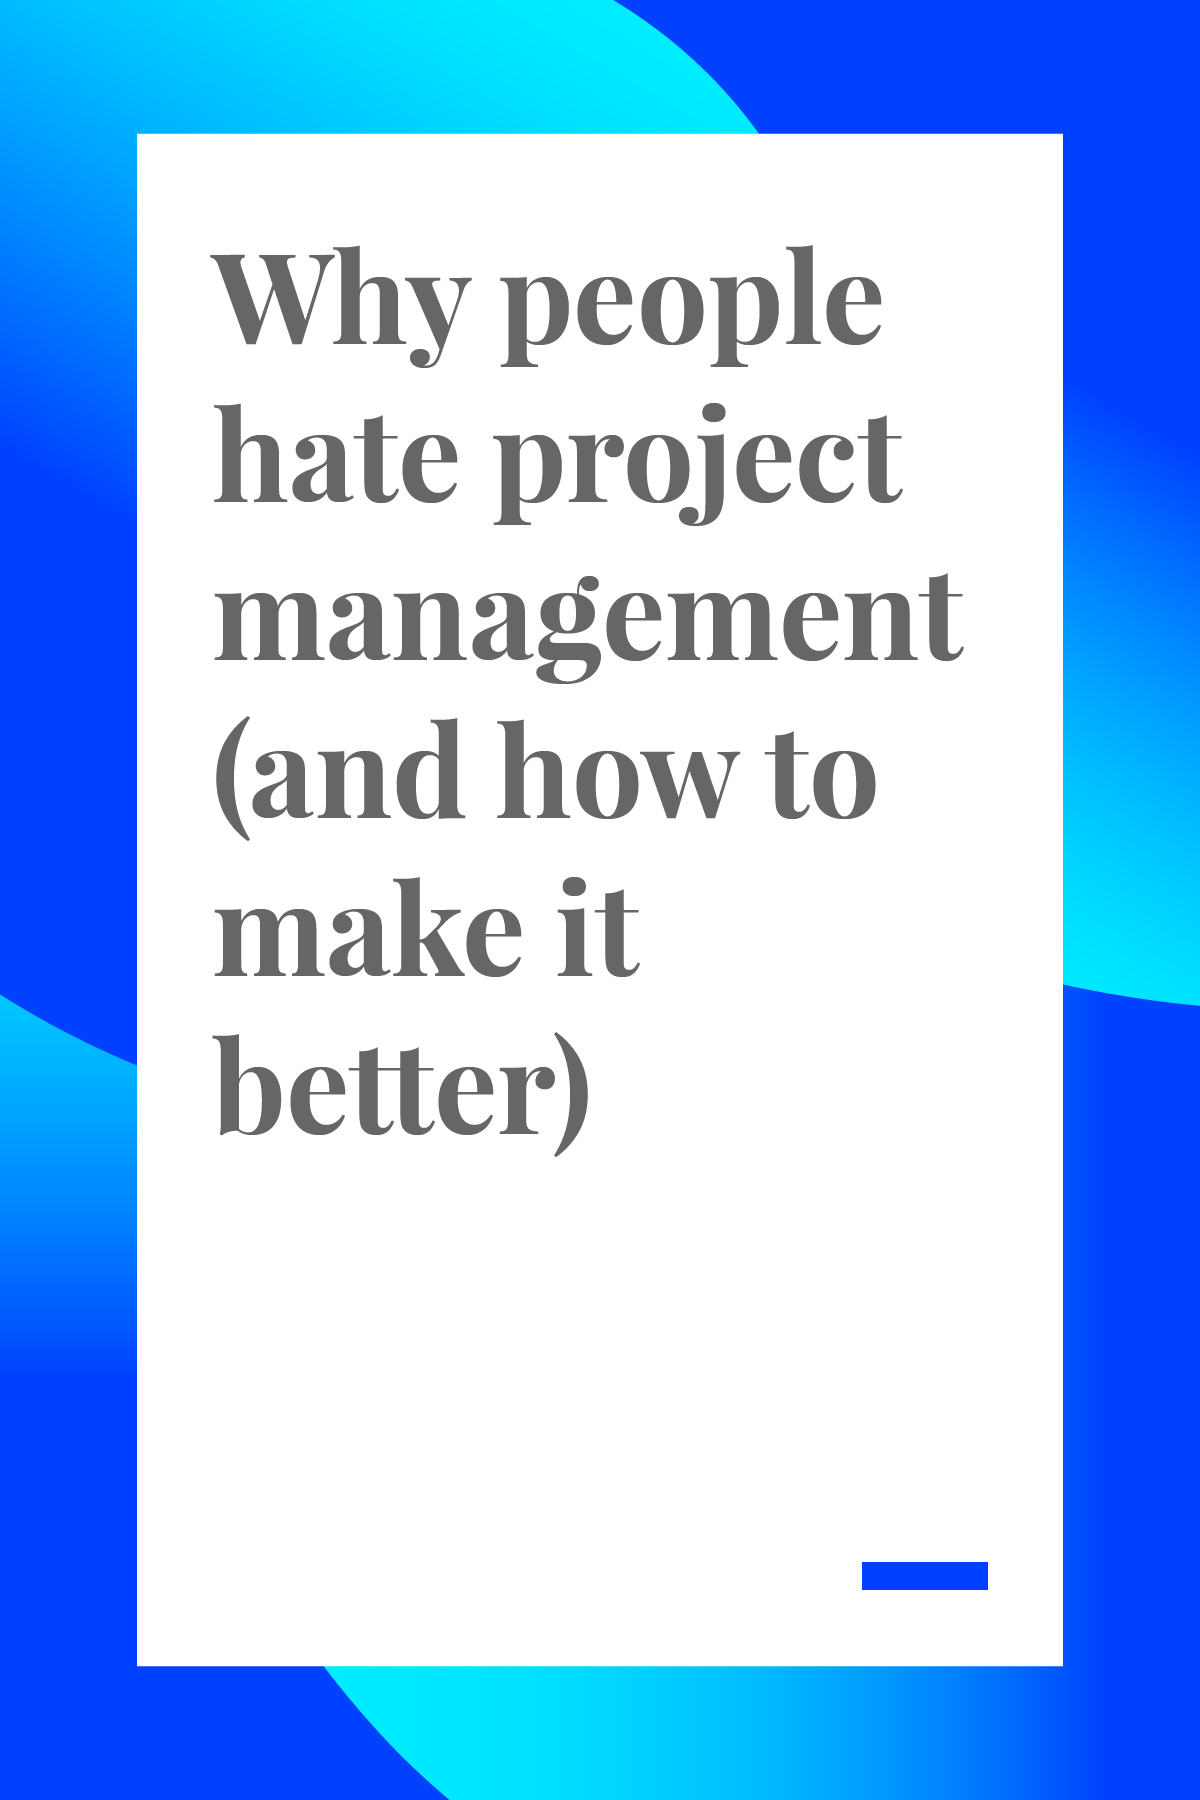 Feeling burnt out on project management? We here ya, here's a few ways to make it better. #projectmanagement #projectmanager